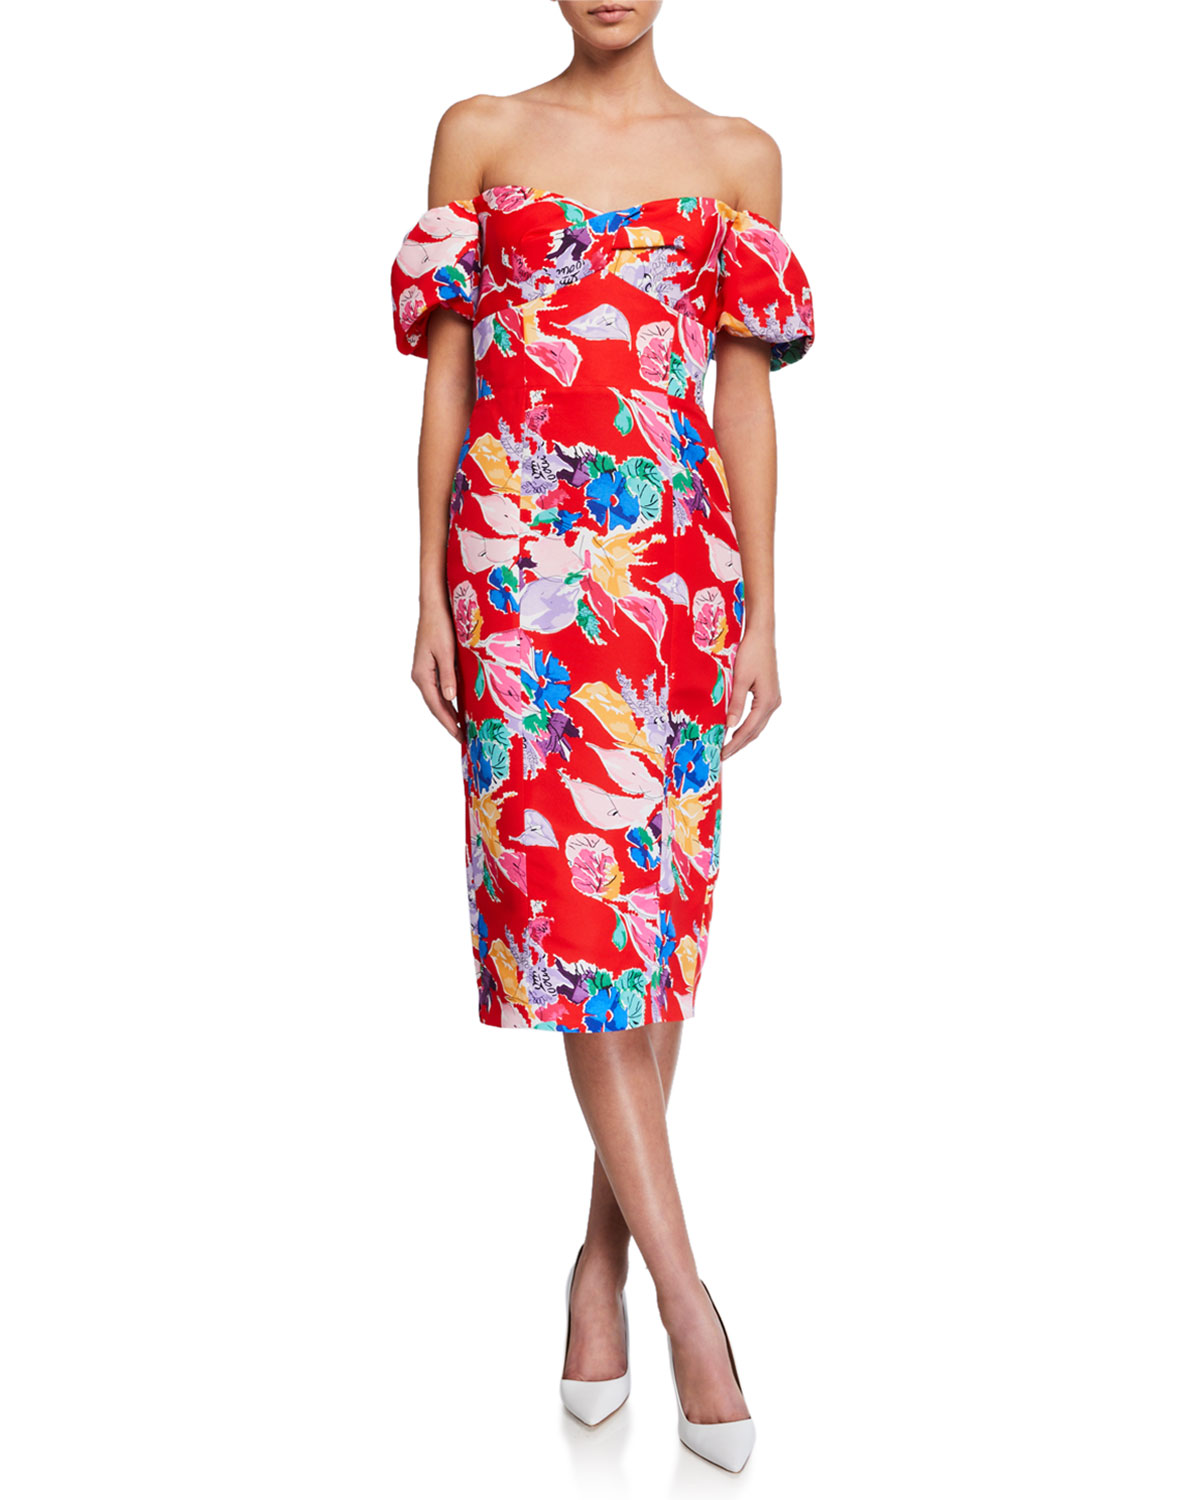 Milly Cara Bouquet Floral Off-the-Shoulder Faille Dress